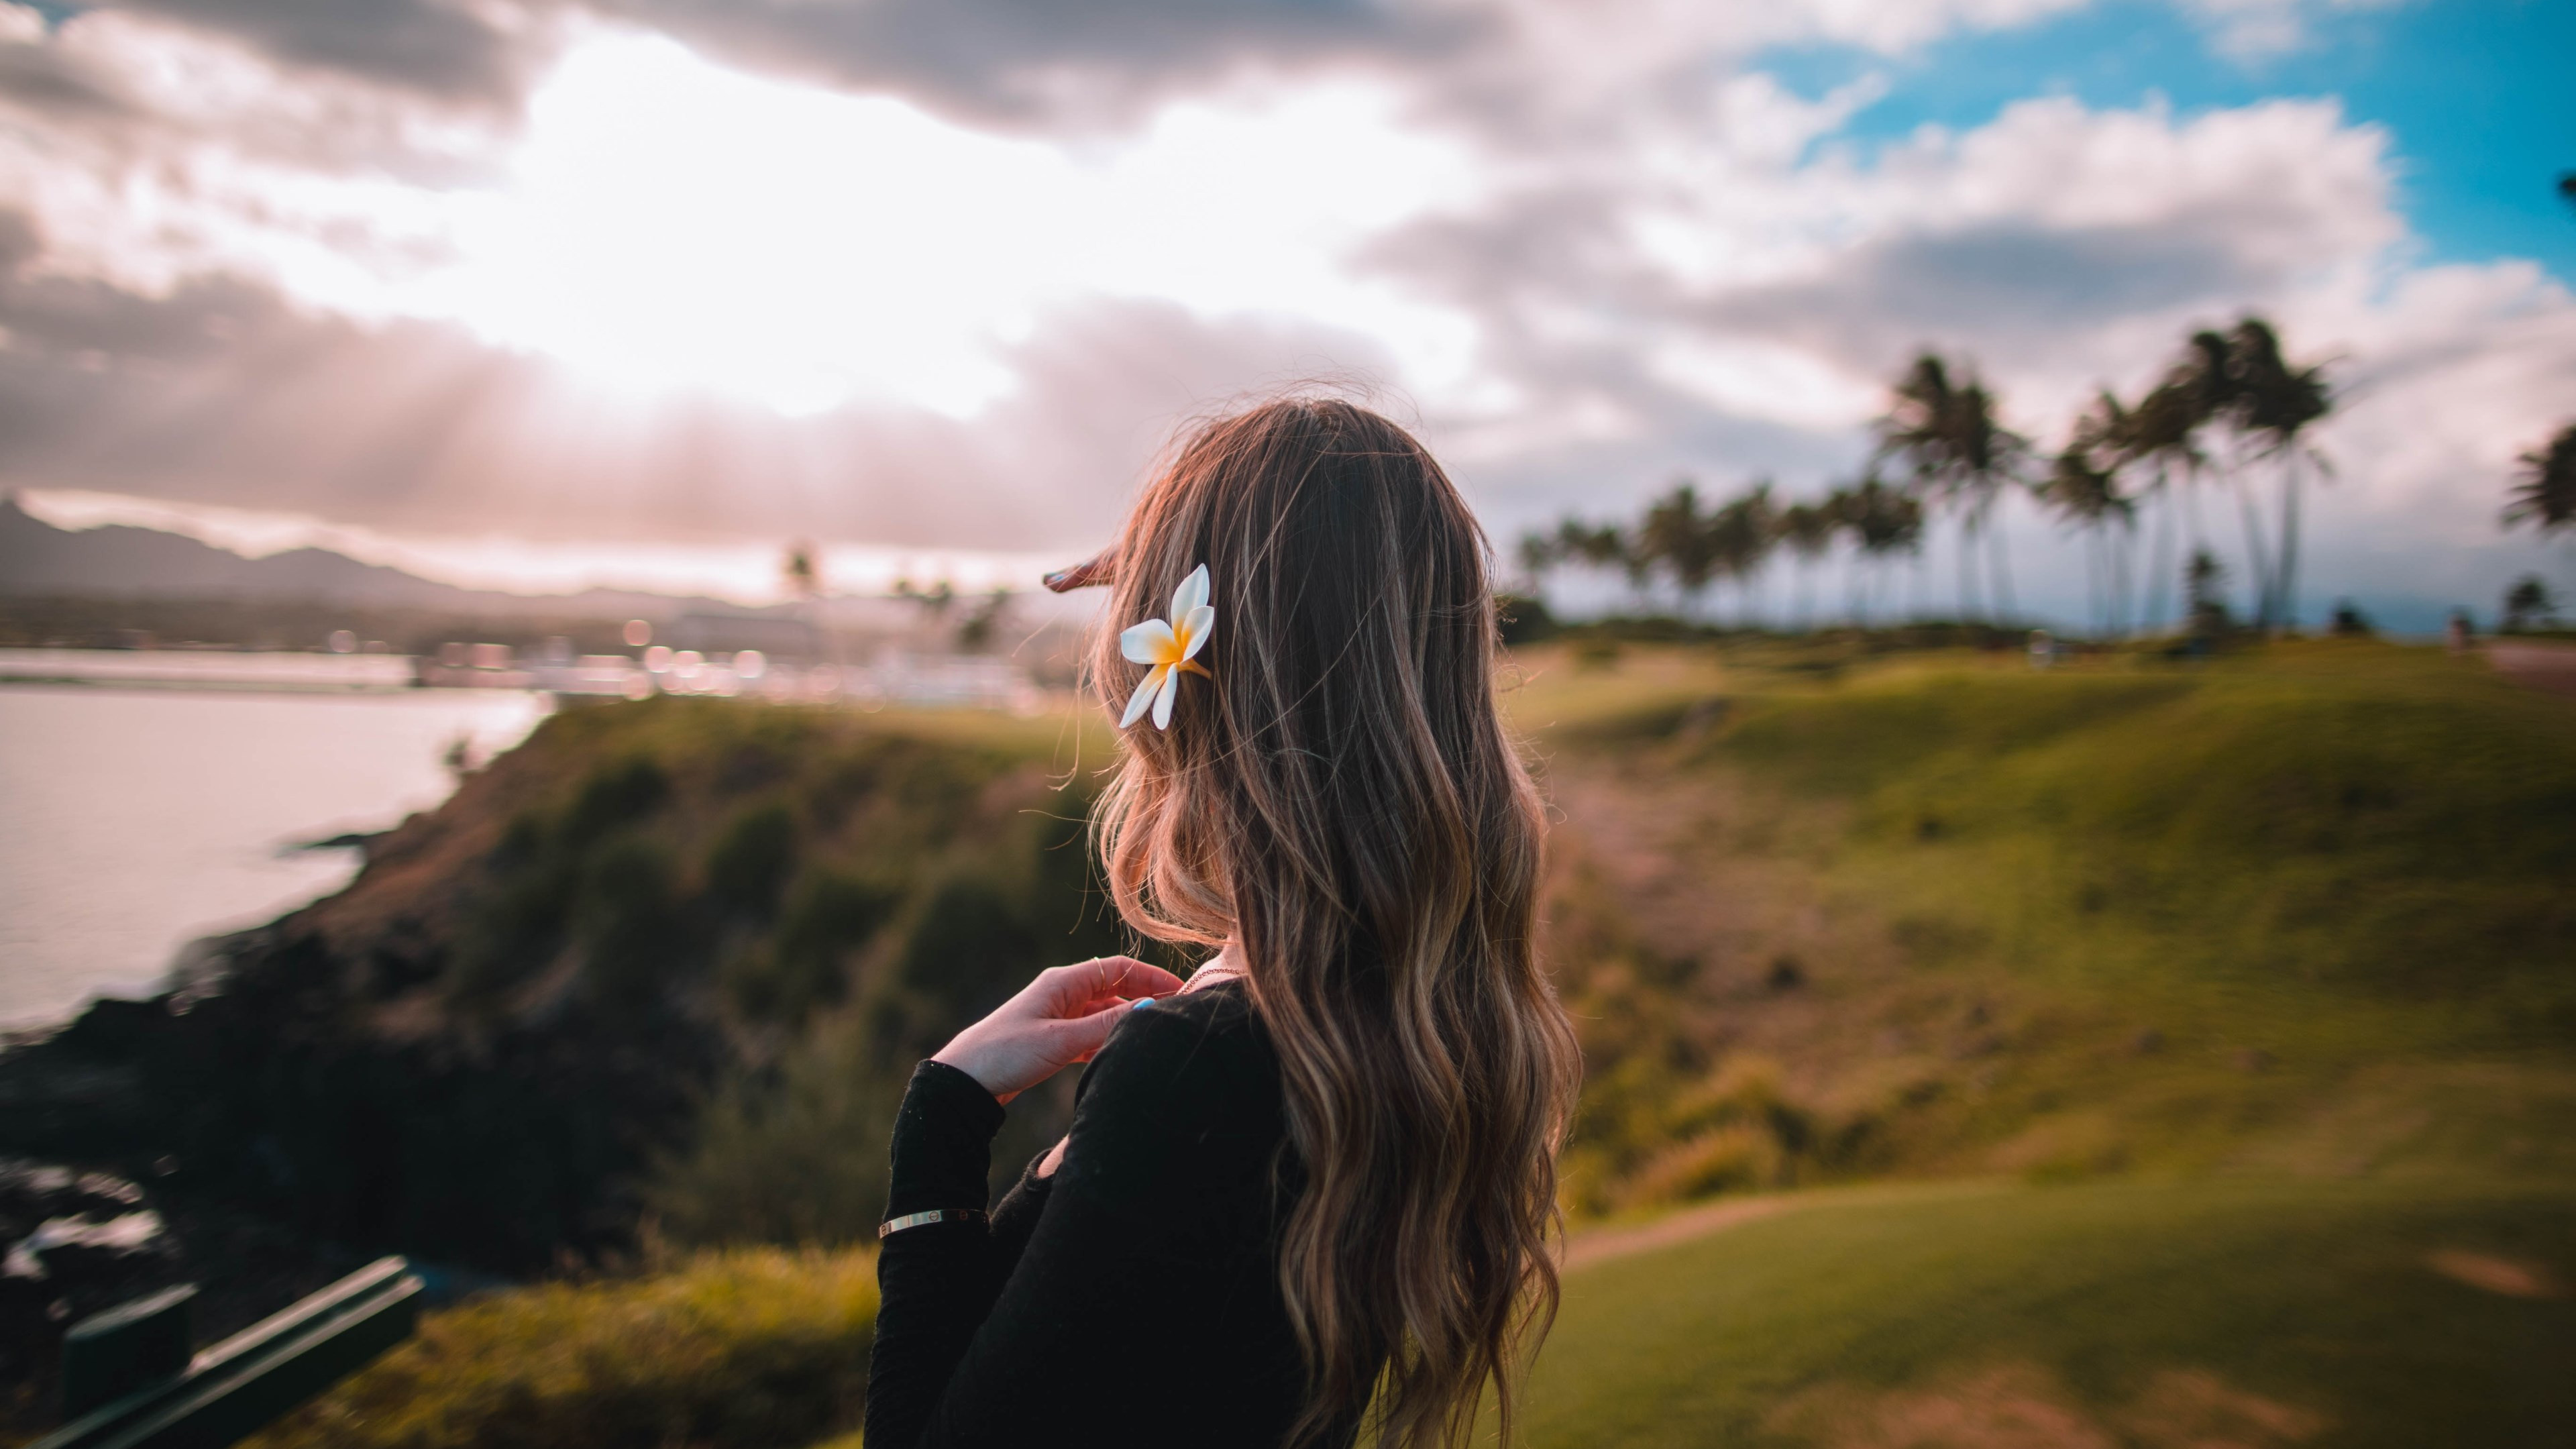 Beautiful girl in the hawaiian landscape wallpaper 3840x2160